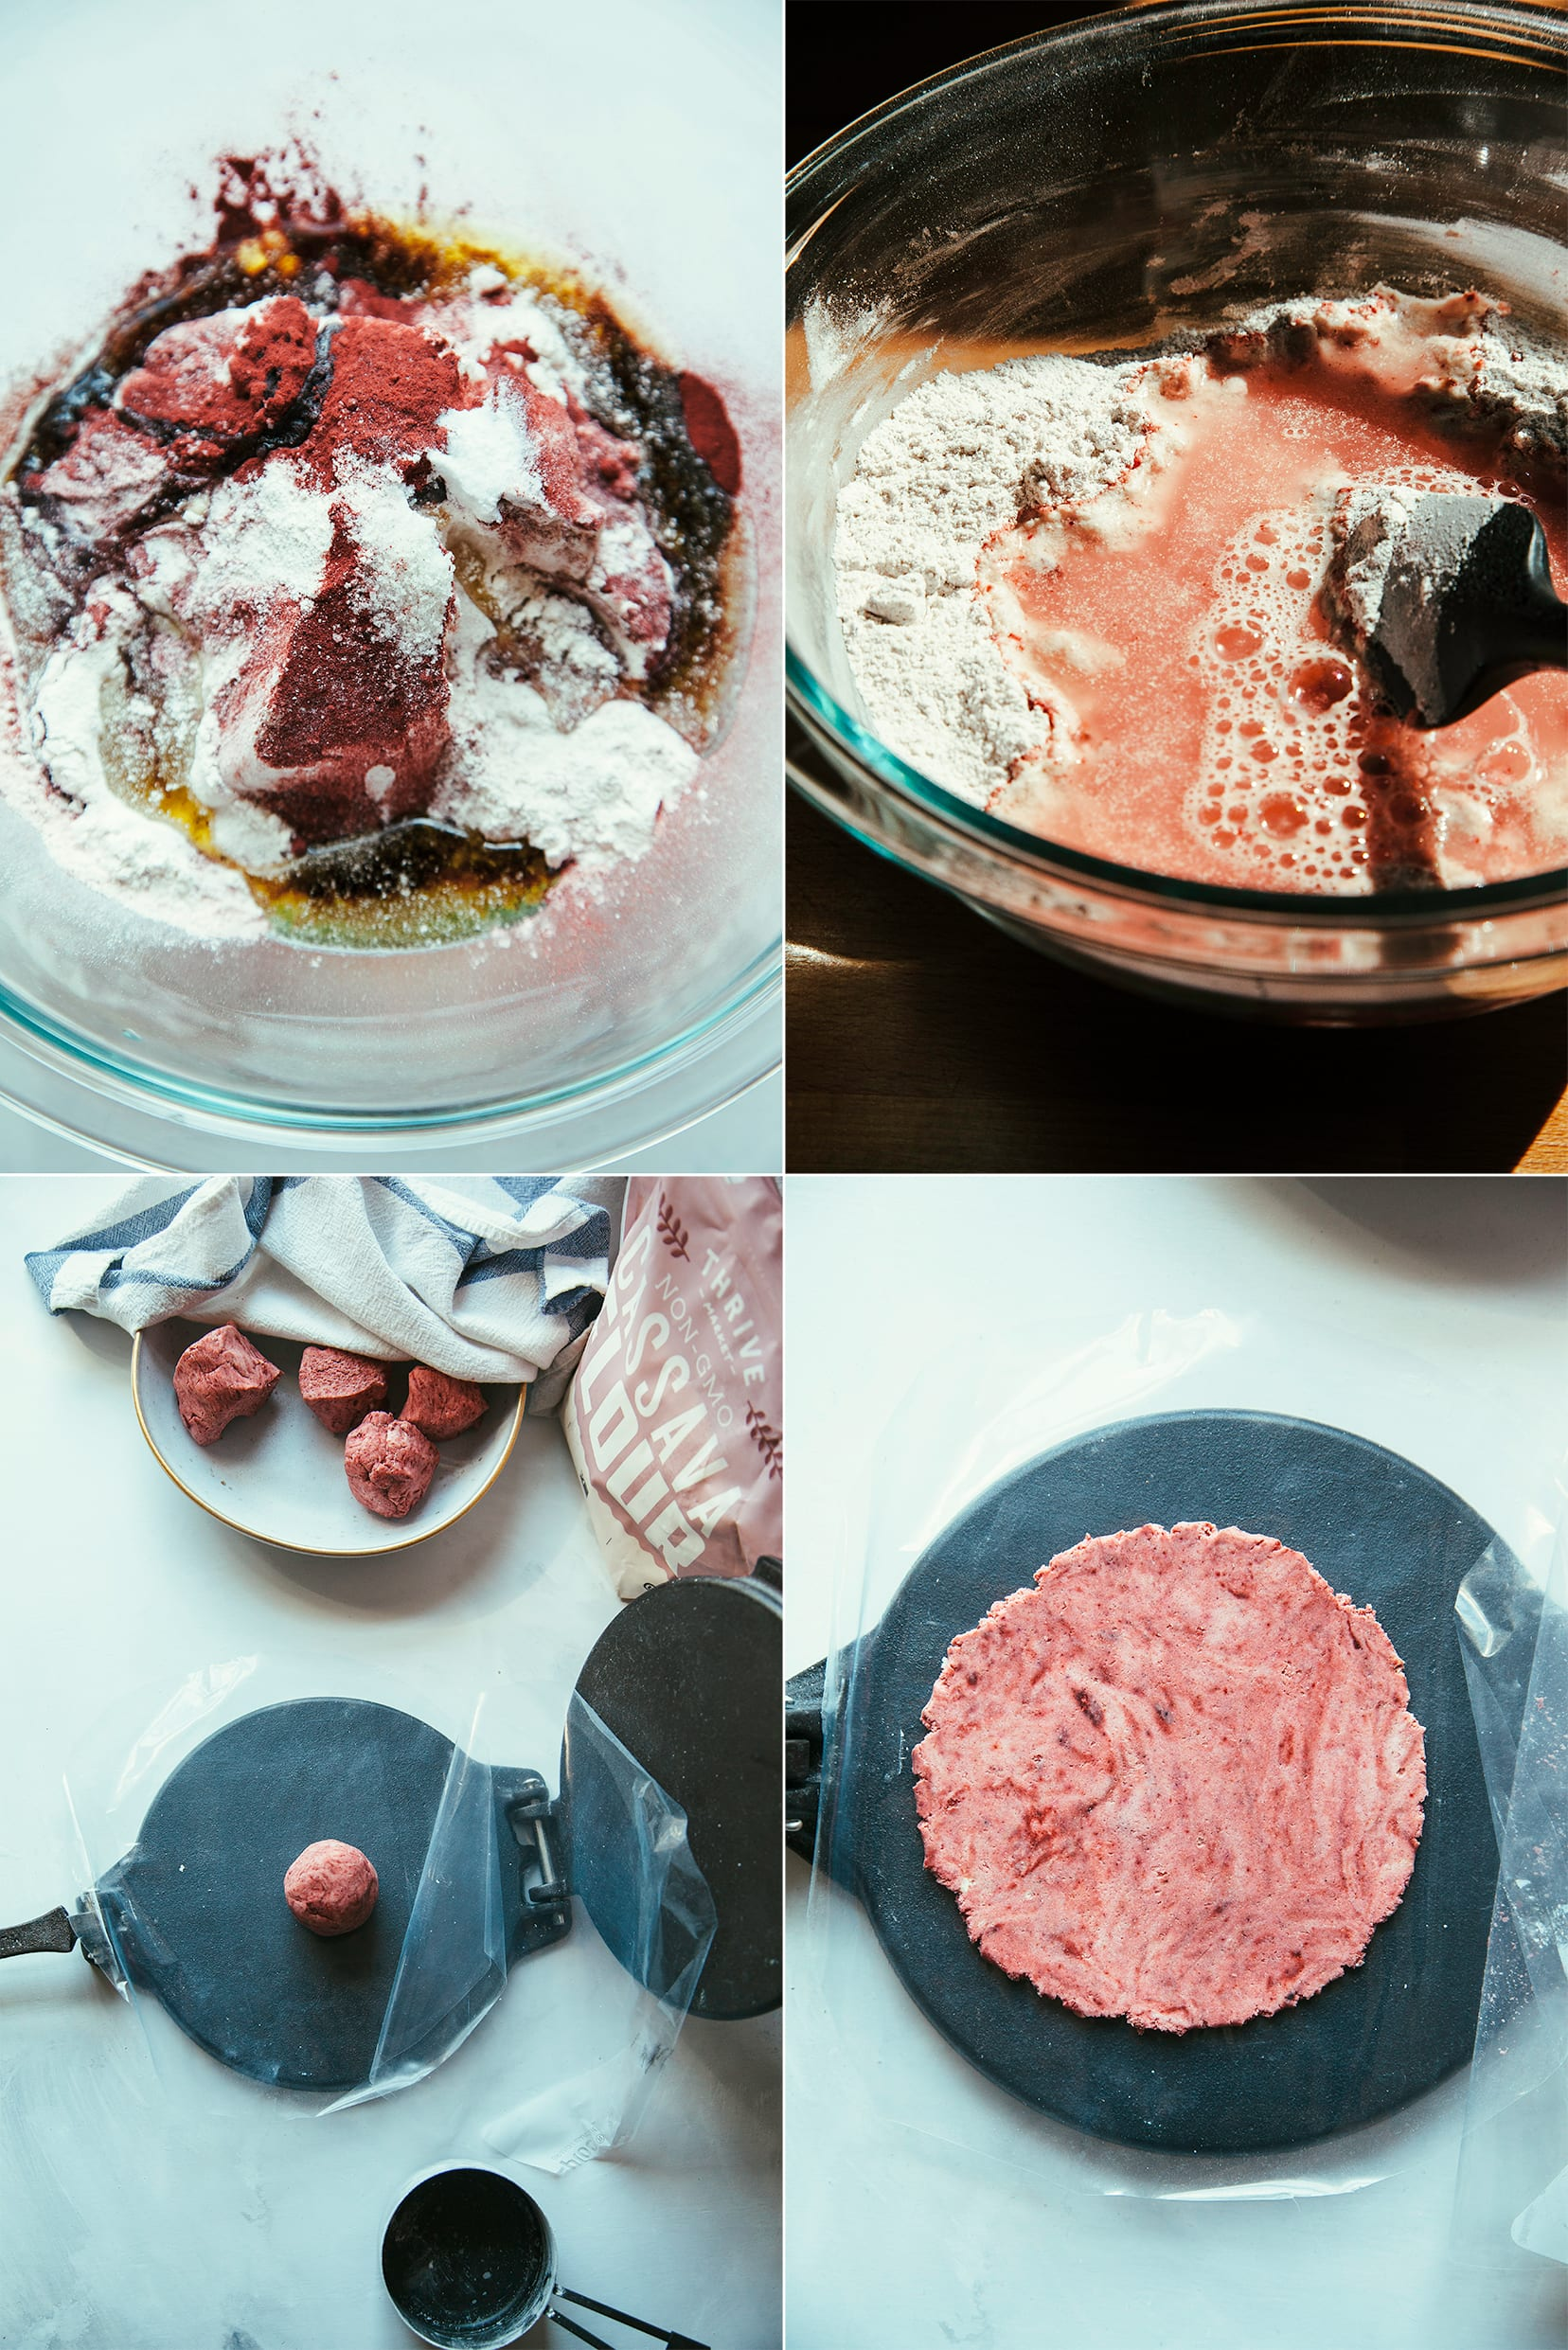 4 images show the making of homemade cassava flour tortillas with a hint of rosy beet powder mixed in.